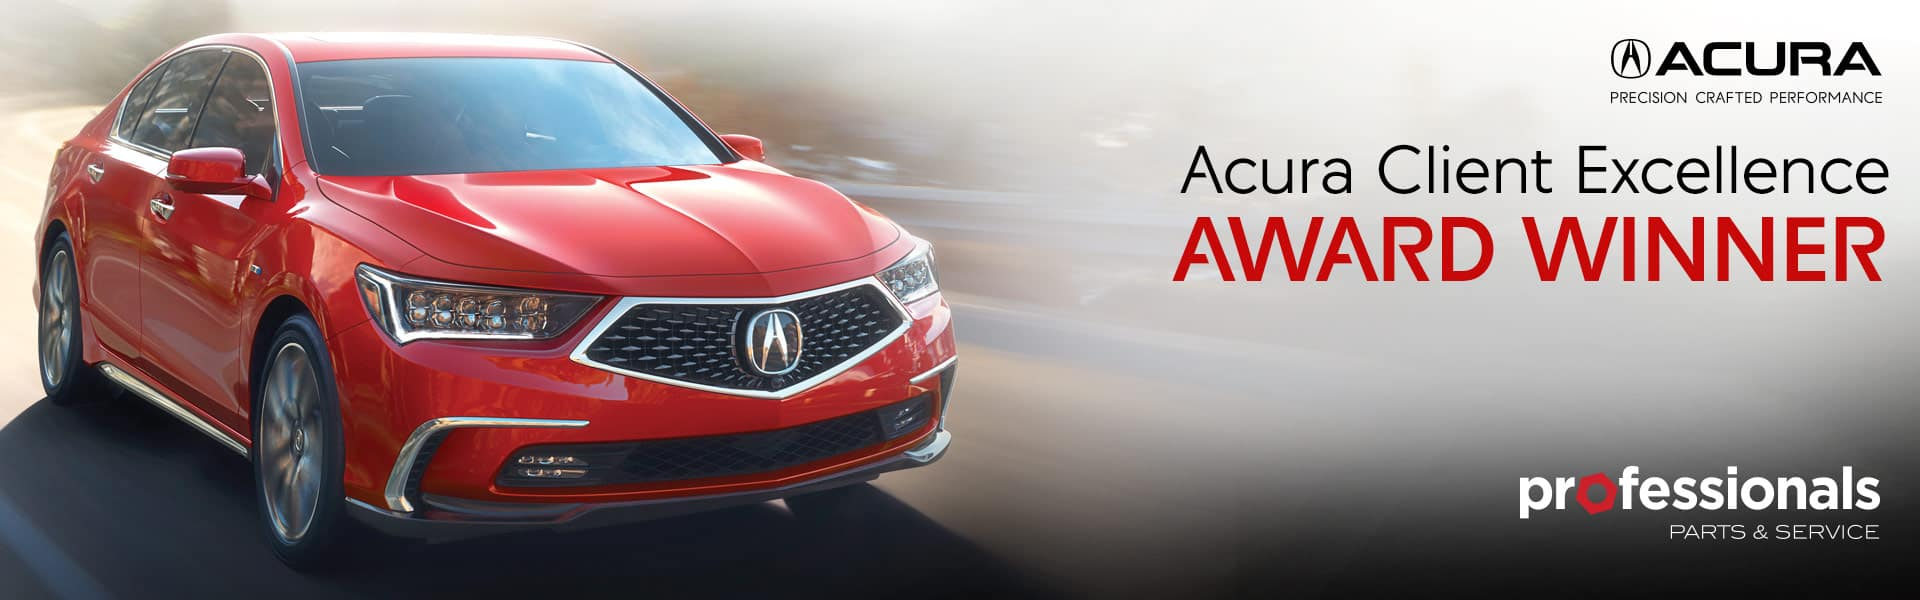 Acura Dealer Parts >> Acura Turnersville Acura Dealer Serving Cherry Hill South Nj